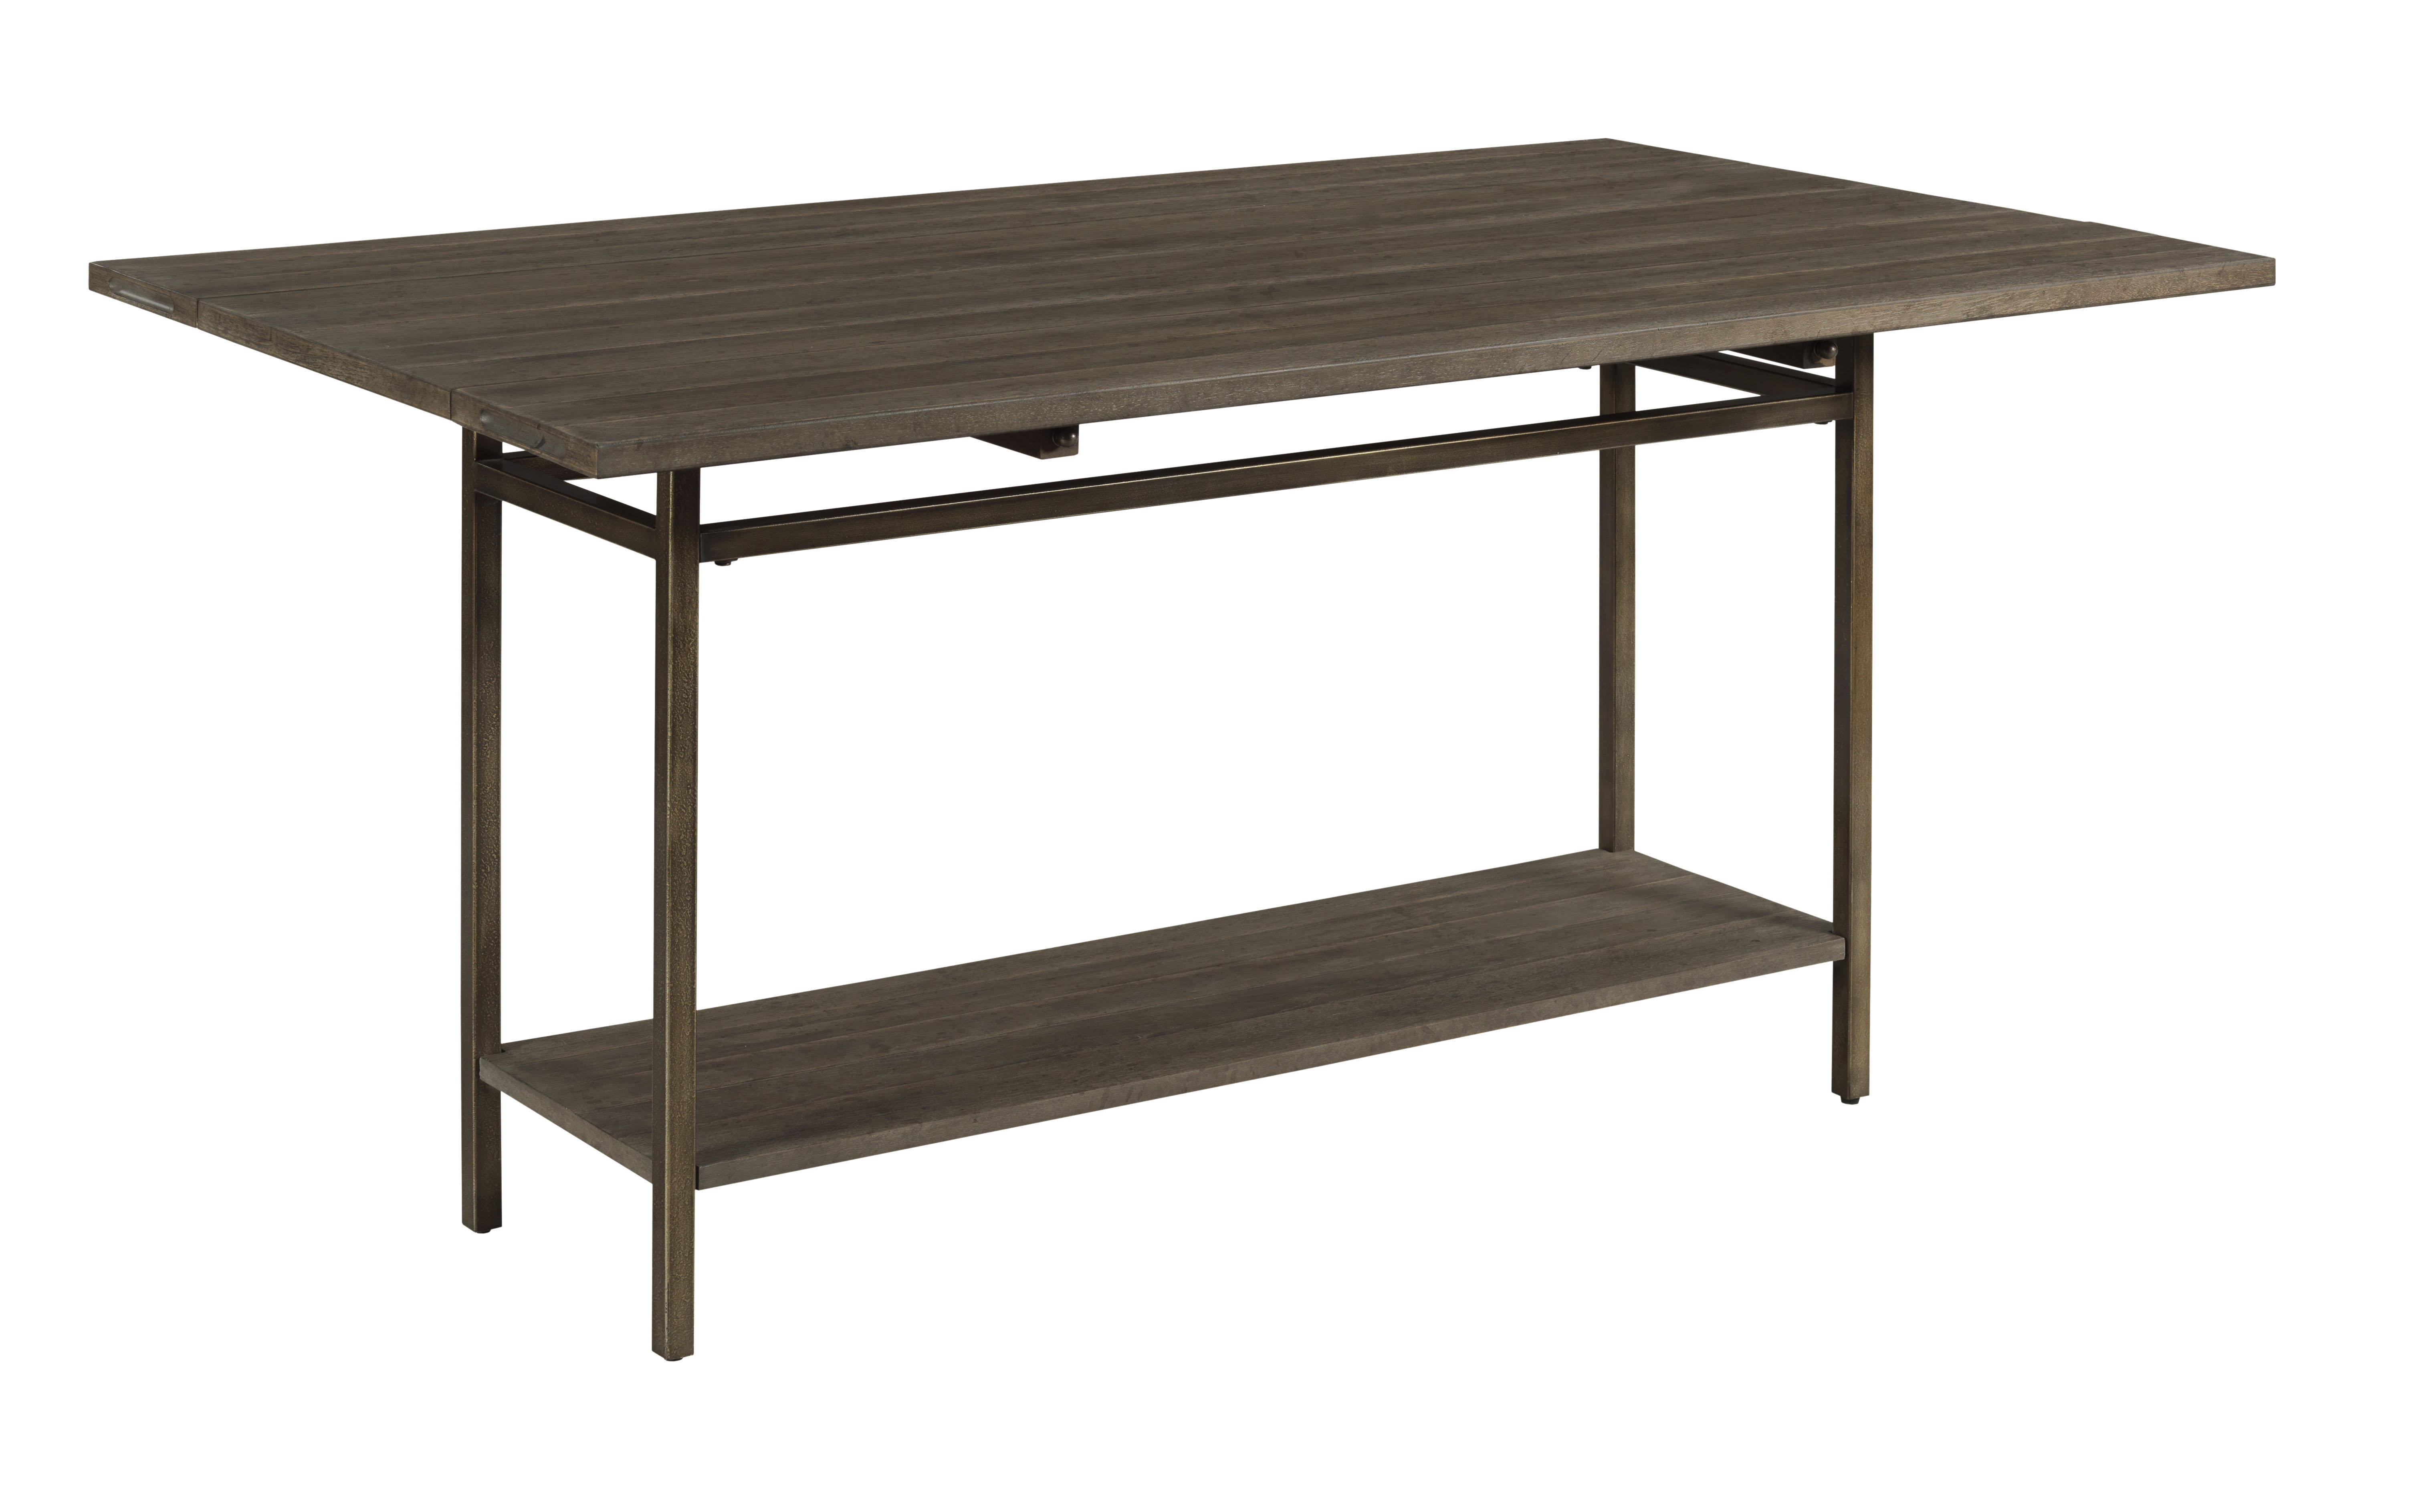 Emporium Sofa Table by Table Trends at Sprintz Furniture